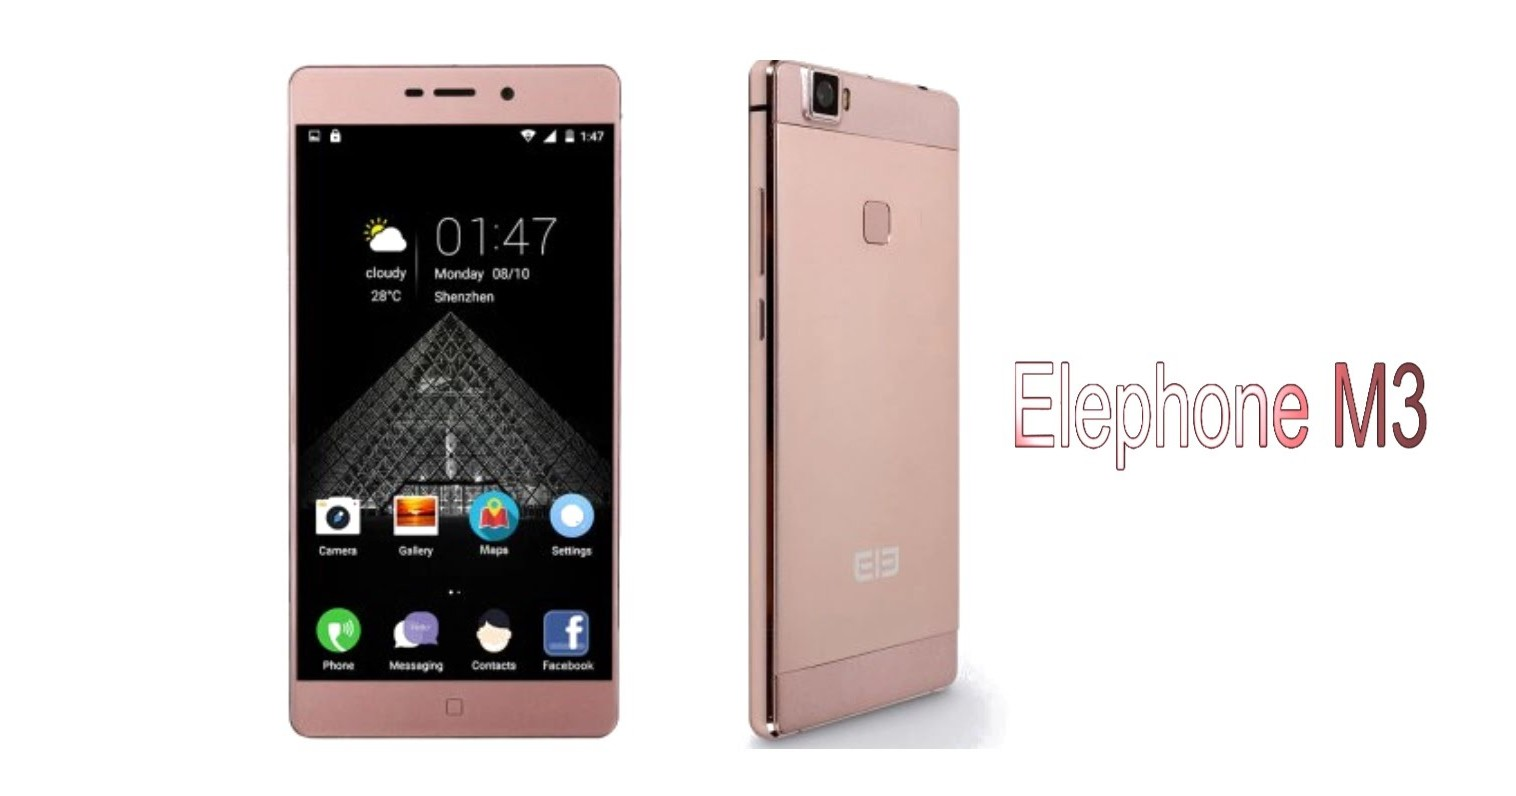 Elephone M3 promo image, fron and back side, rose gold colr.